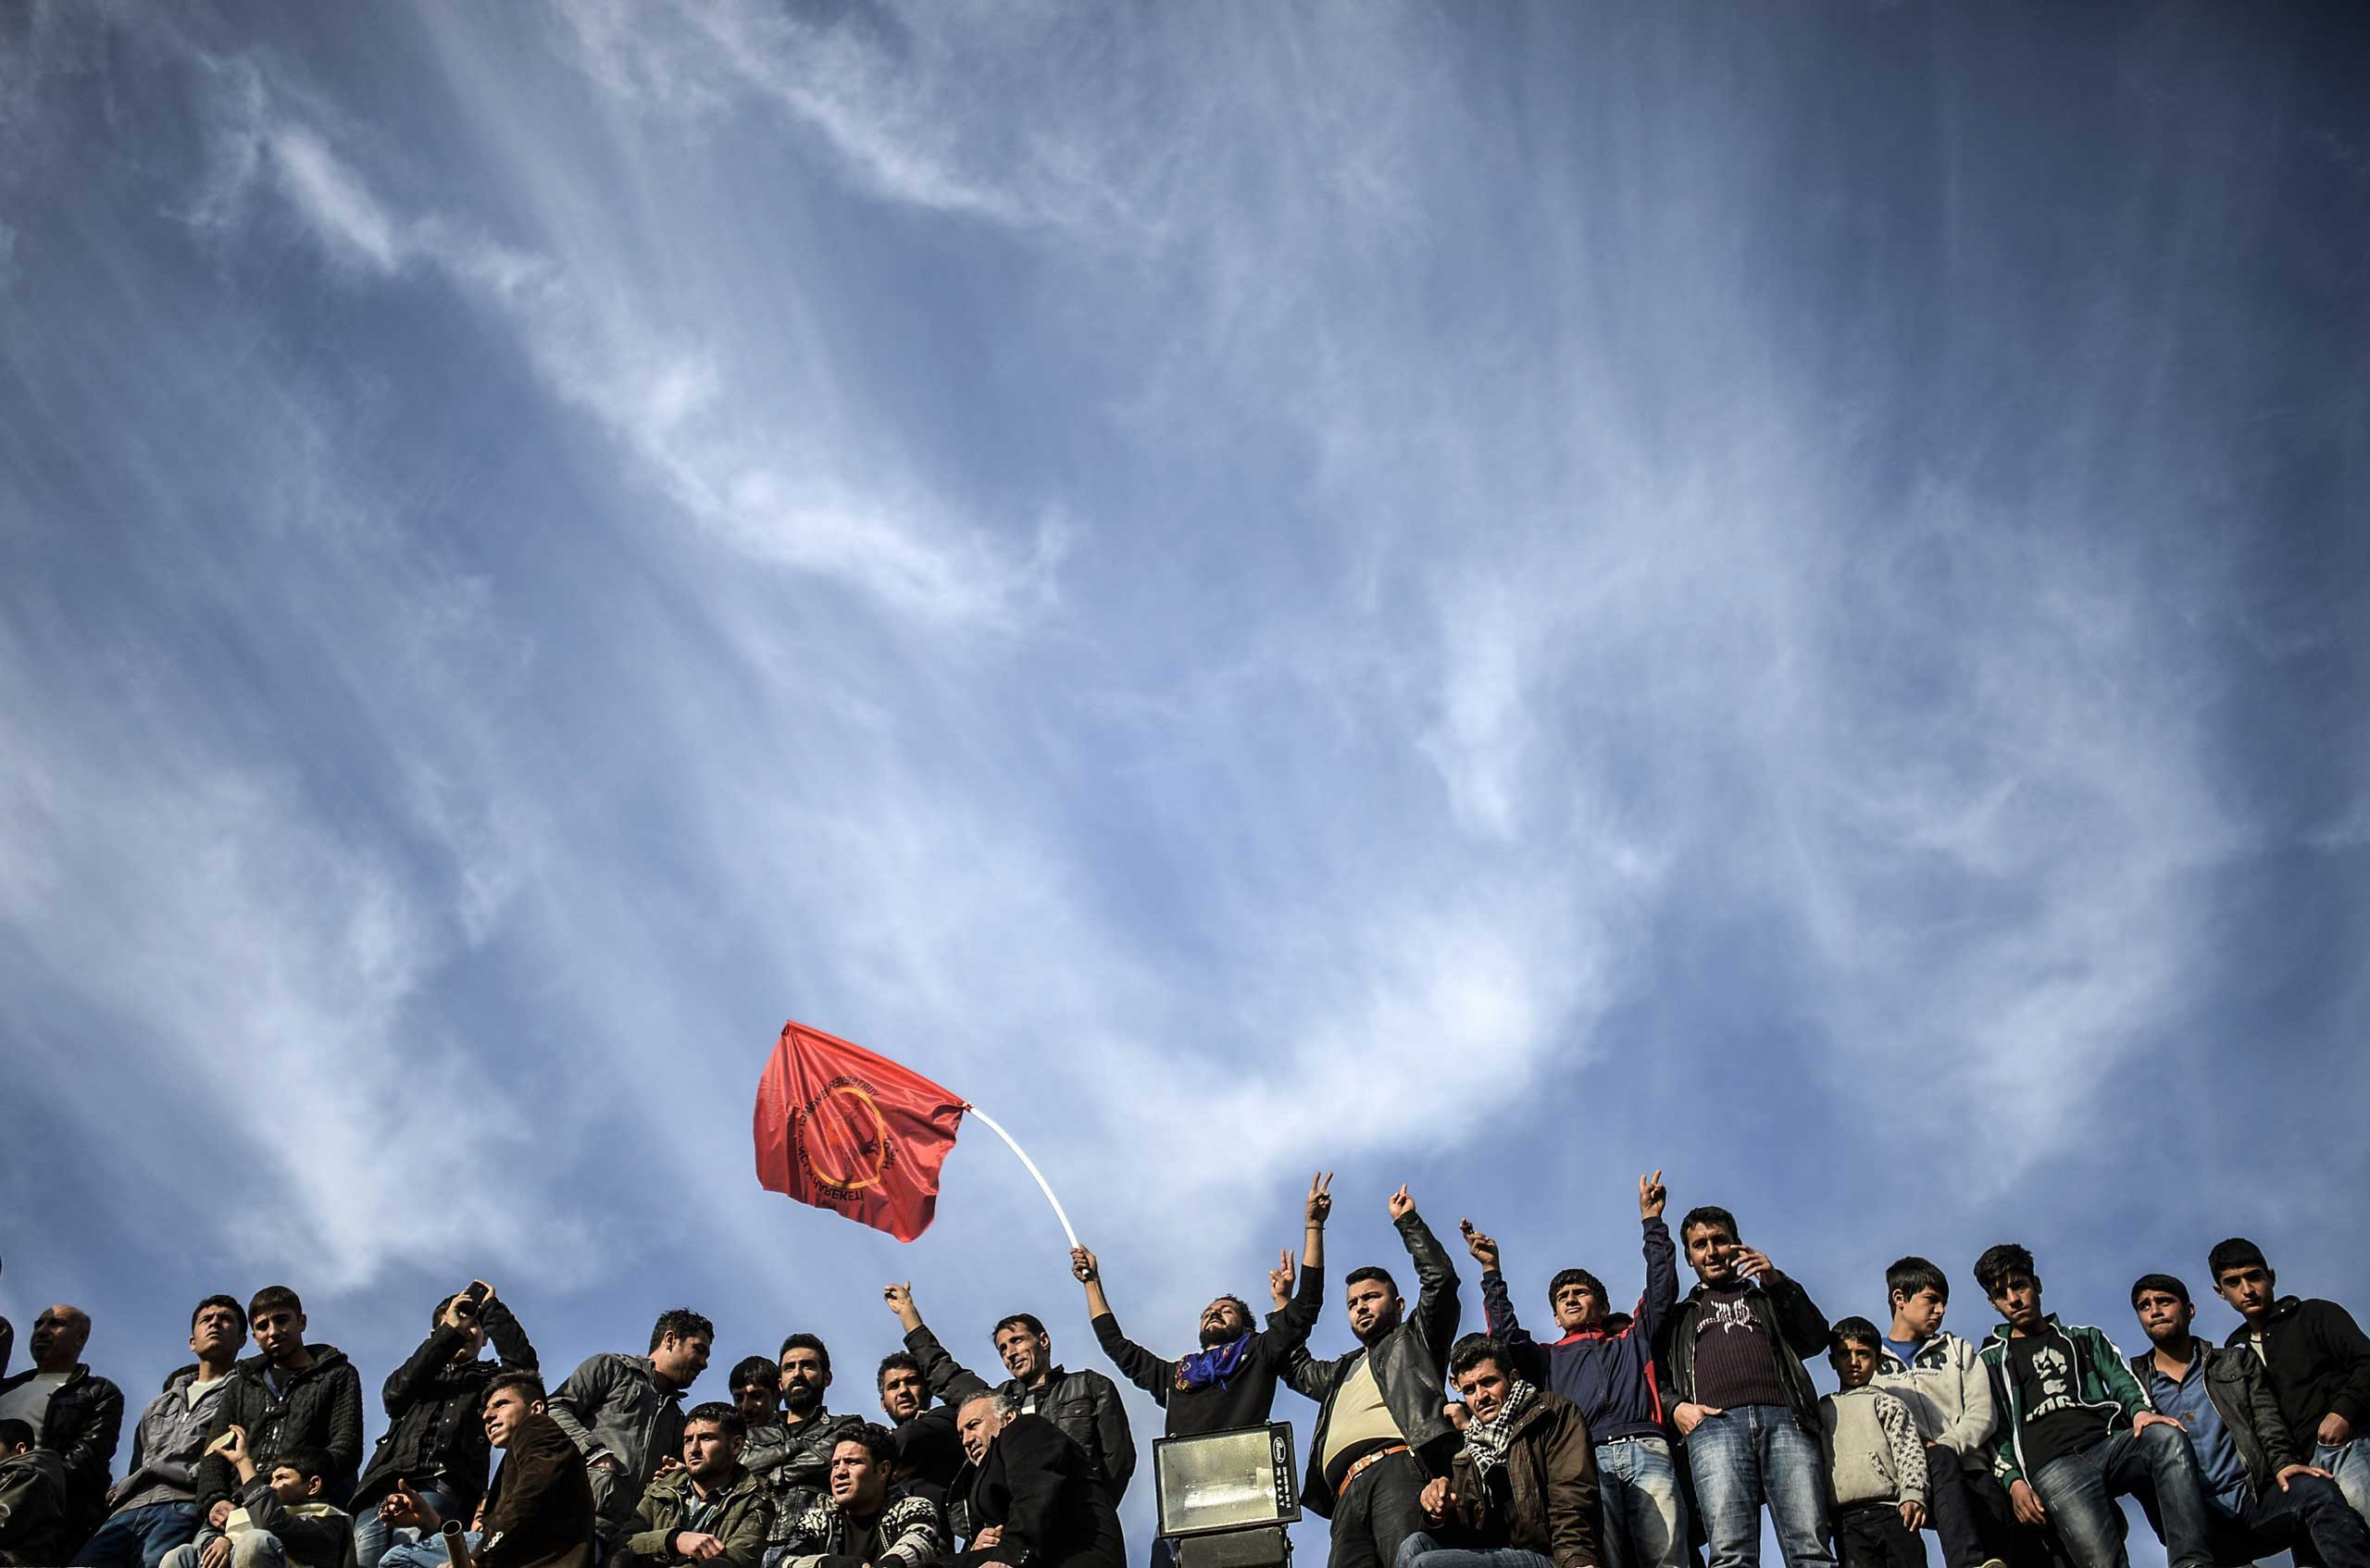 Jan. 27, 2015. Kurdish people celebrate near the Turkish-Syrian border at Suruc, in Sanliurfa province. Kurdish fighters have expelled Islamic State group militants from the Syrian border town of Kobani, dealing a key symbolic blow to the jihadists' ambitions.